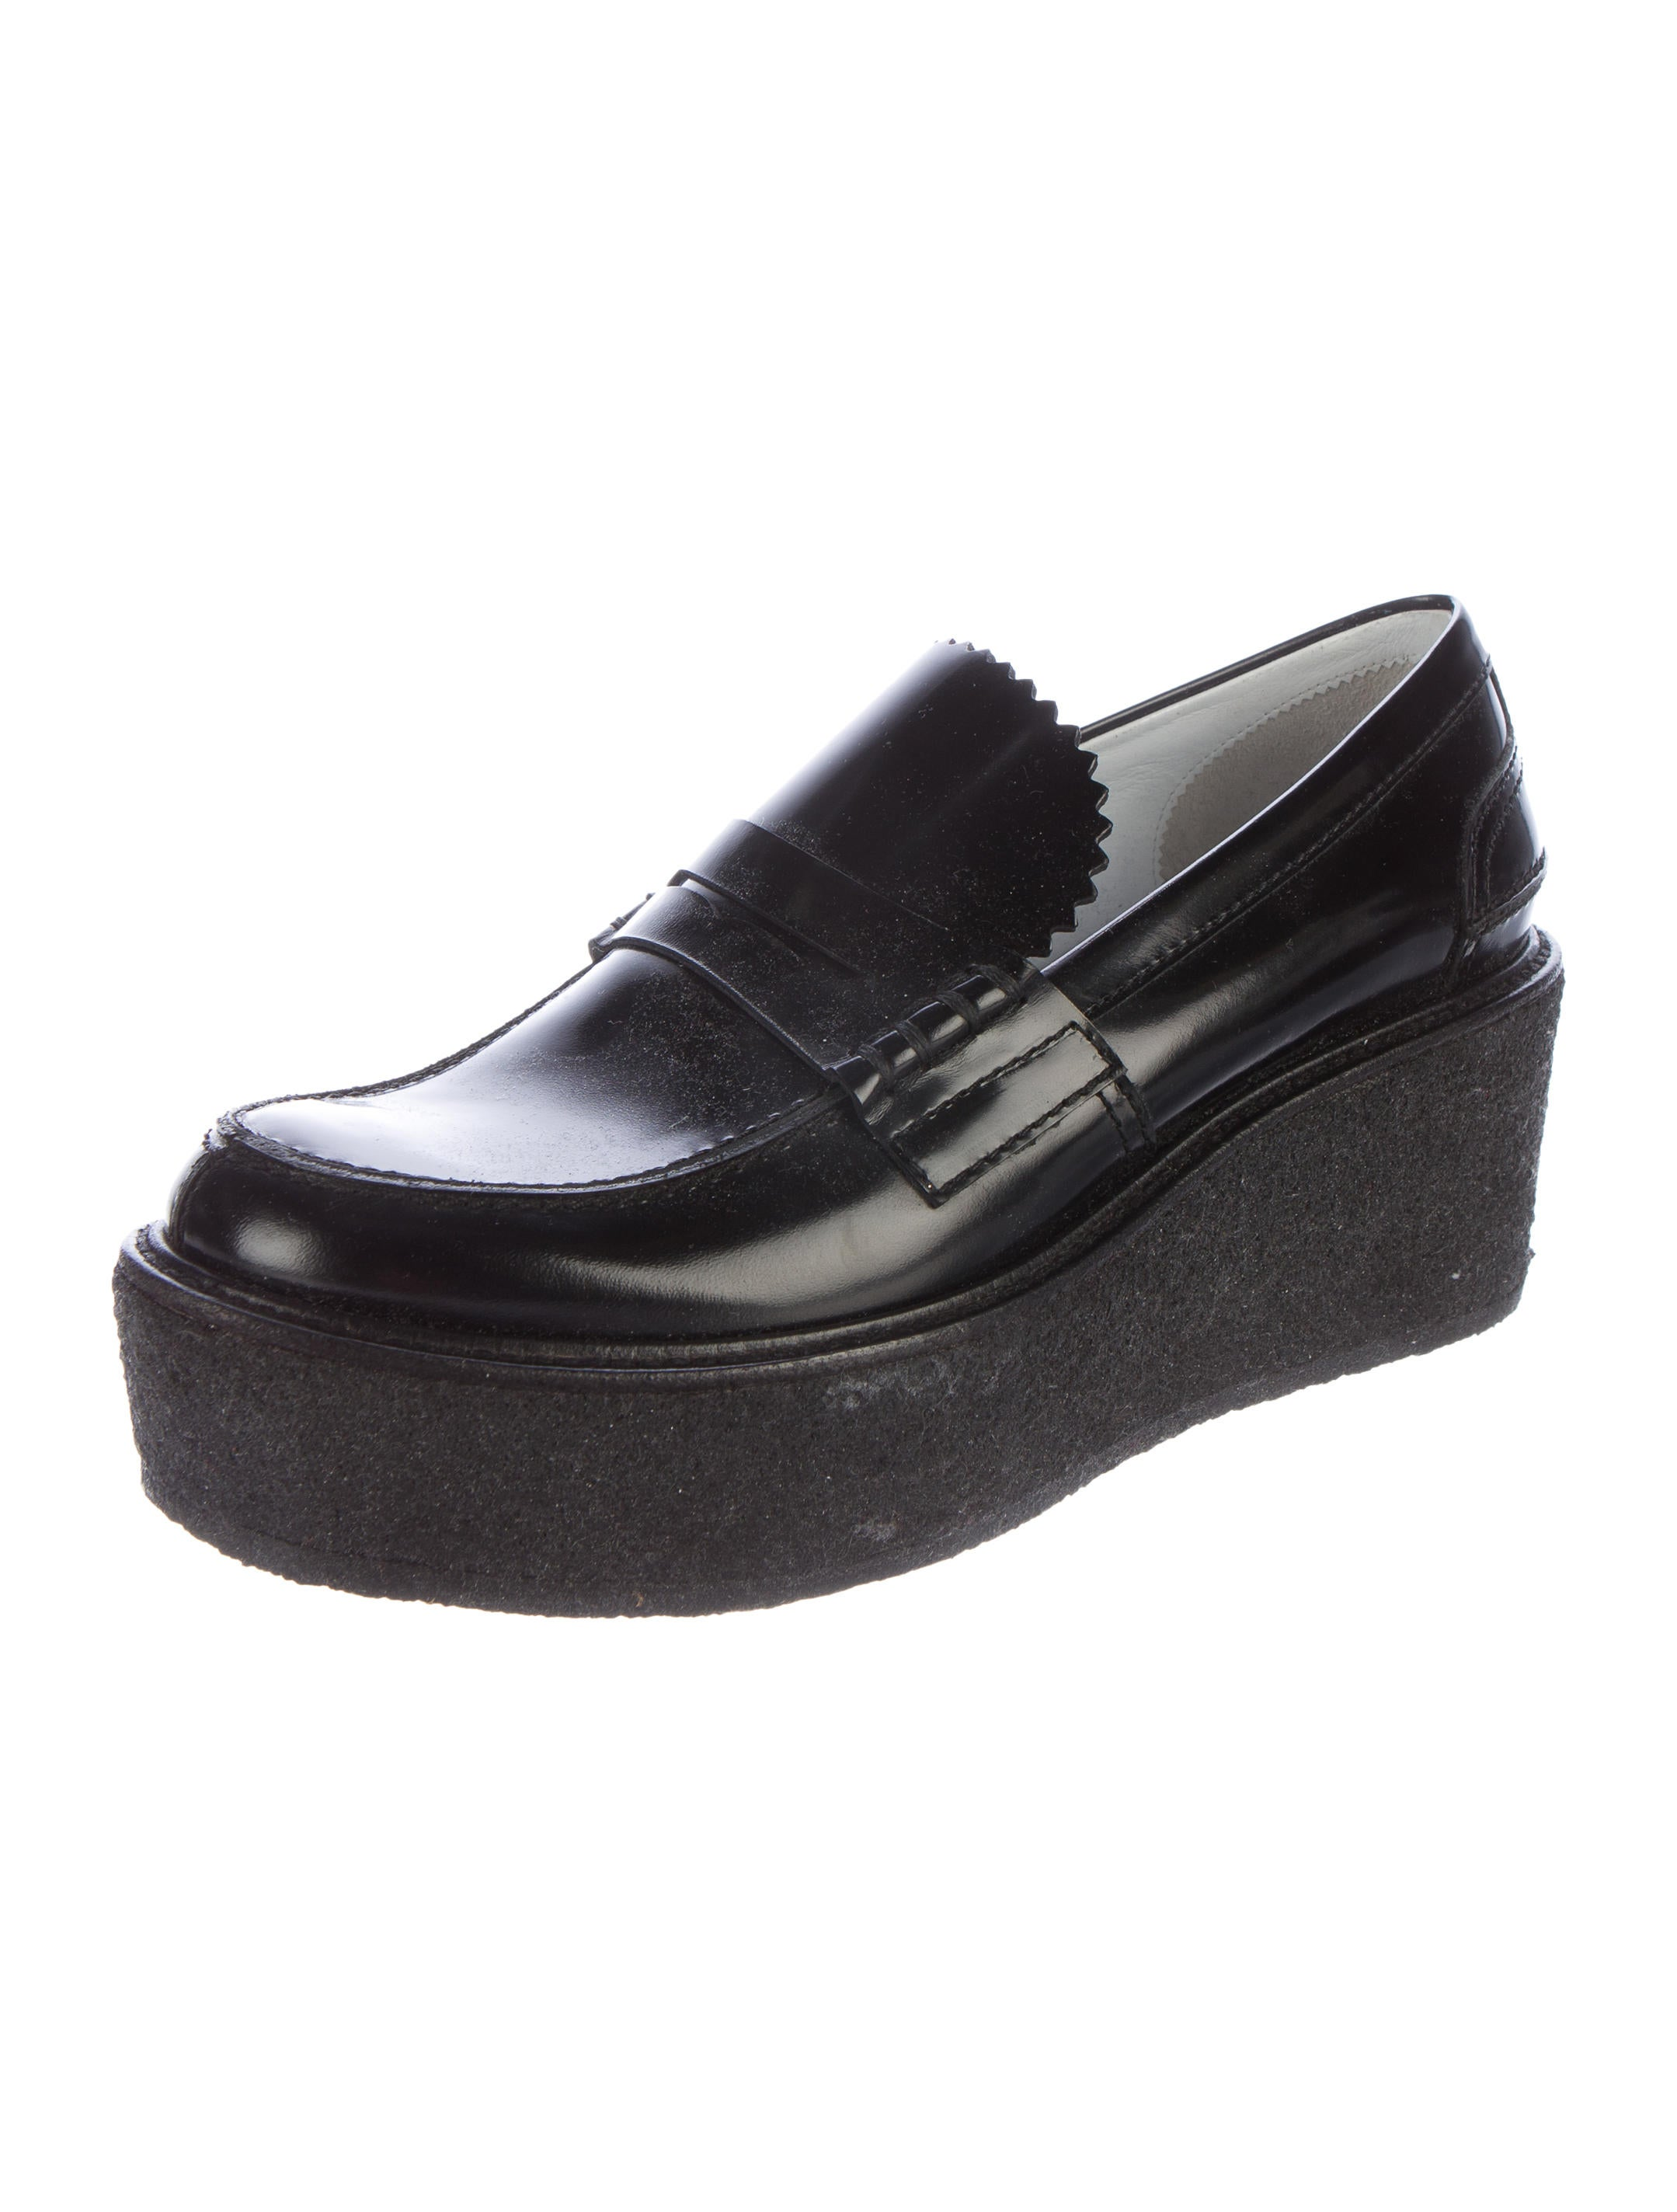 Shop for women's loafers and oxford style shoes online at DSW, where we feature a wide range of loafer and dress shoe styles. Get free shipping on all orders!